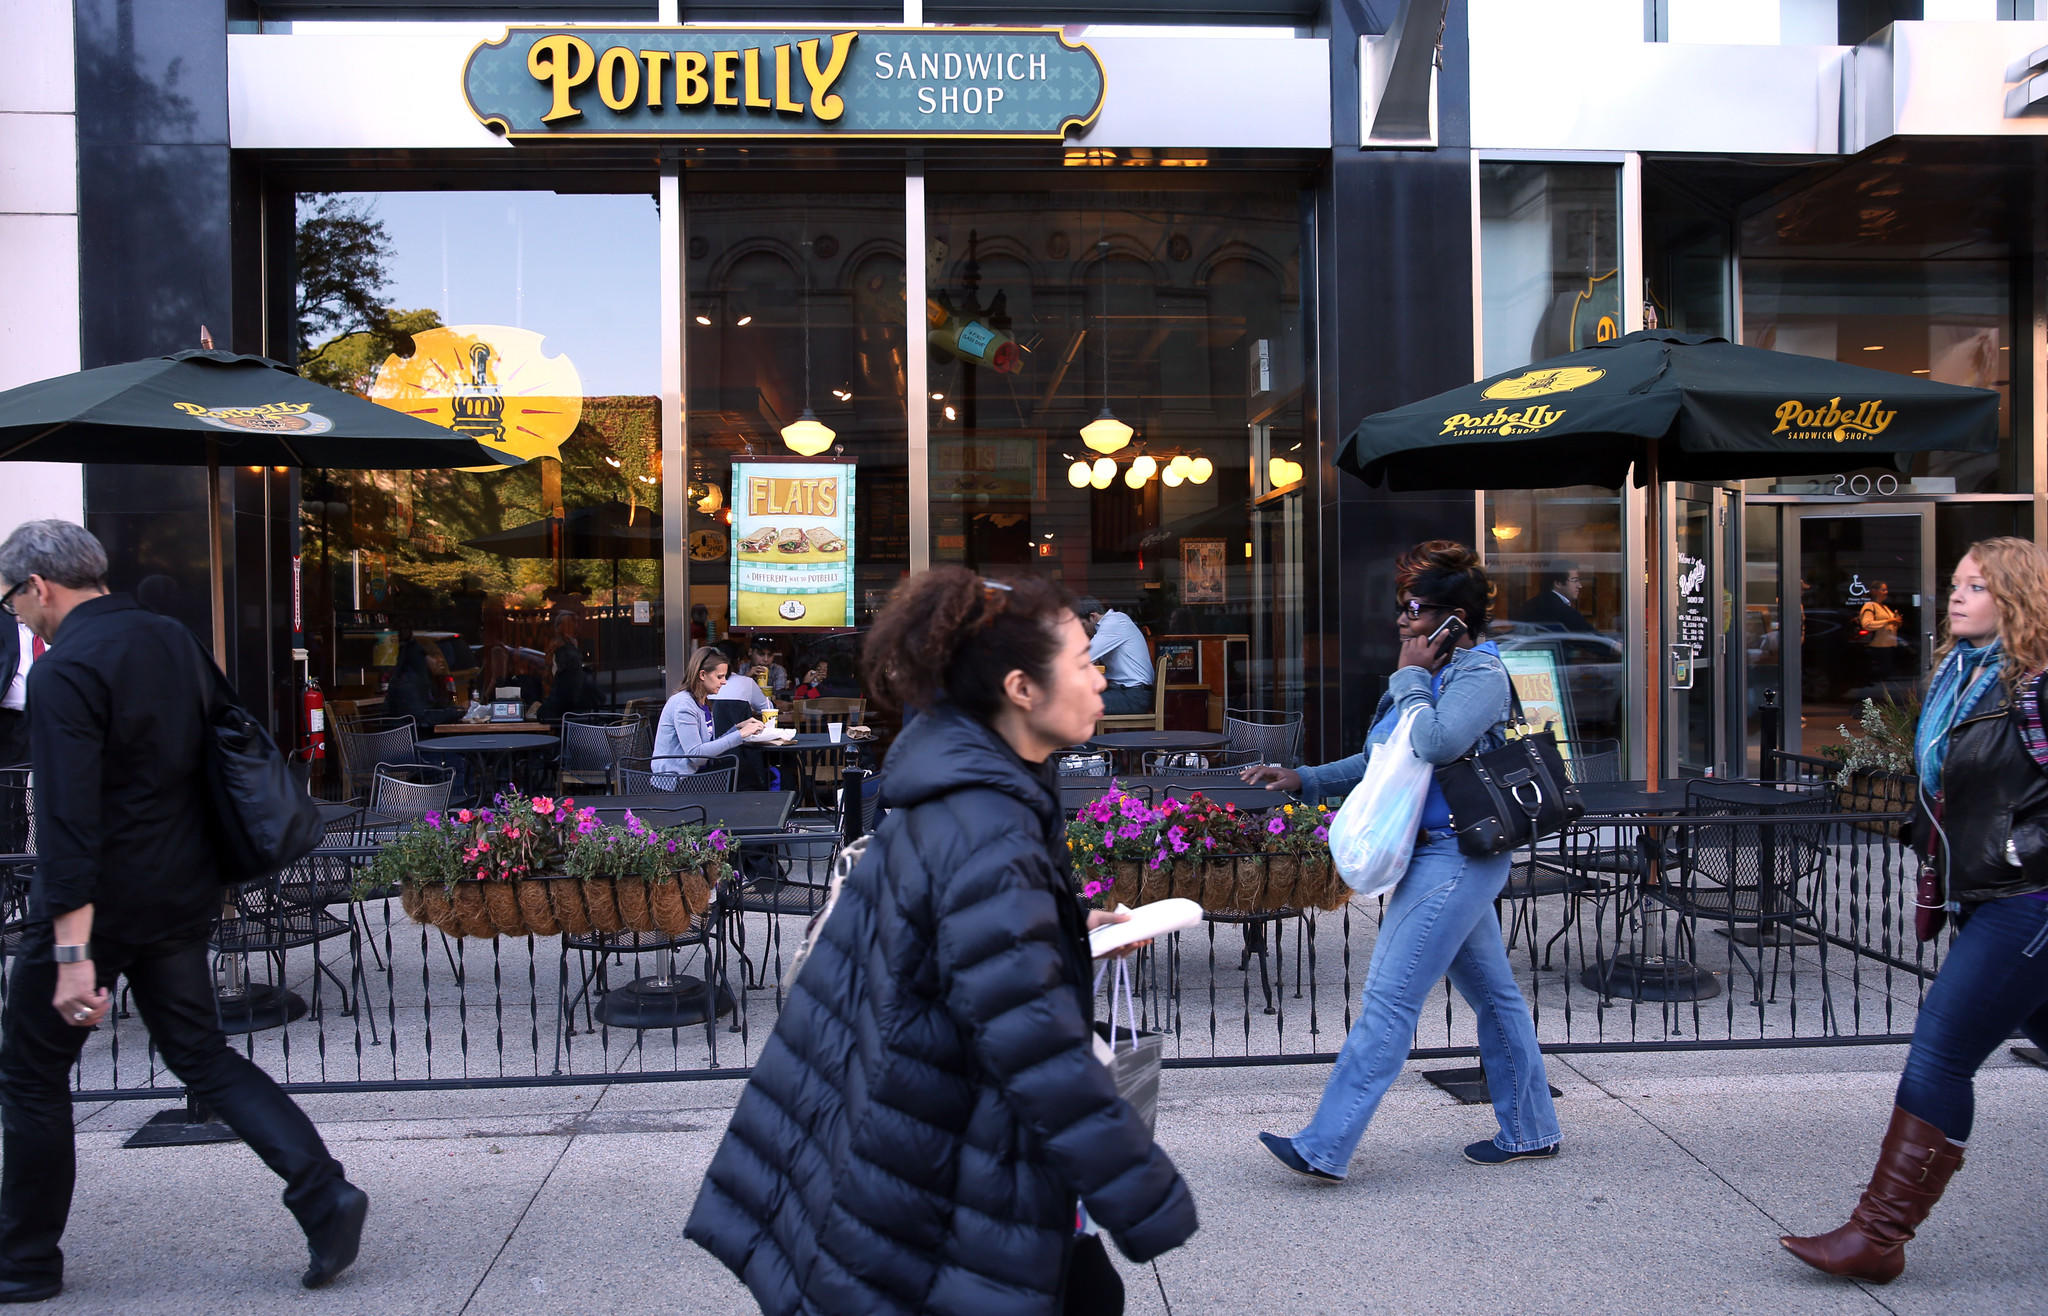 The Potbelly location at 200 S. Michigan.